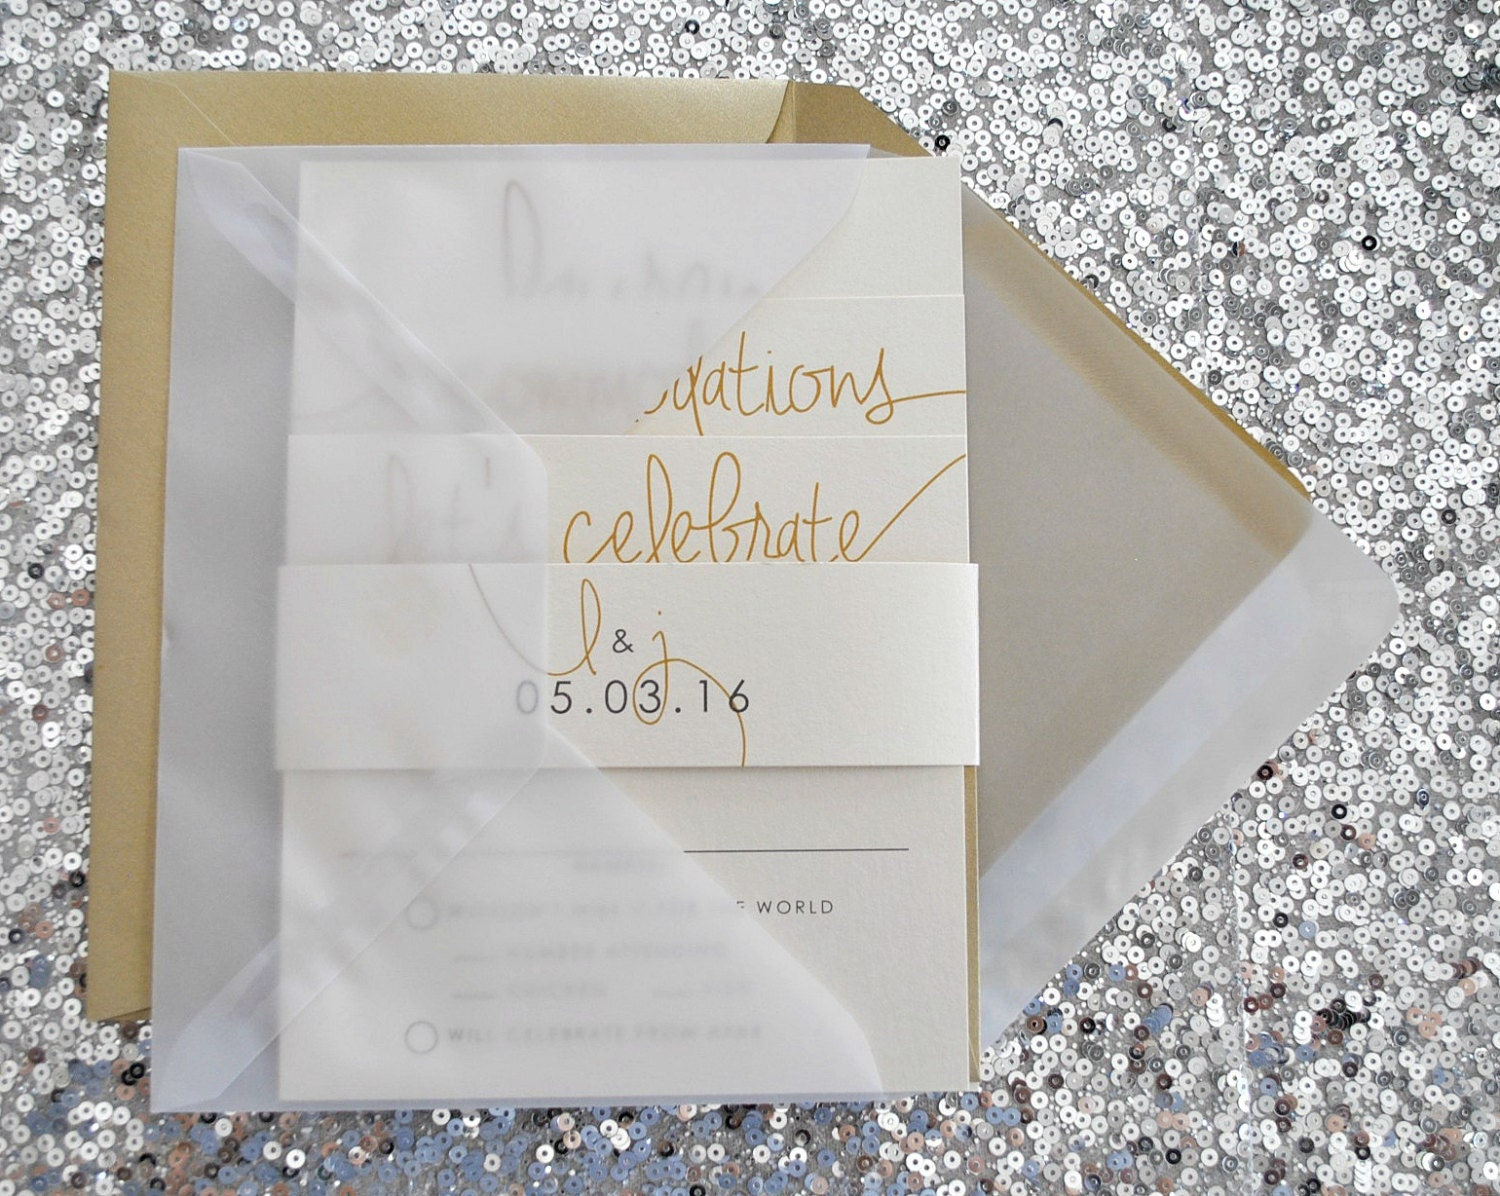 Cardstock Paper For Wedding Invitations: Paige Wedding Invitation Suite With Belly Band And Vellum